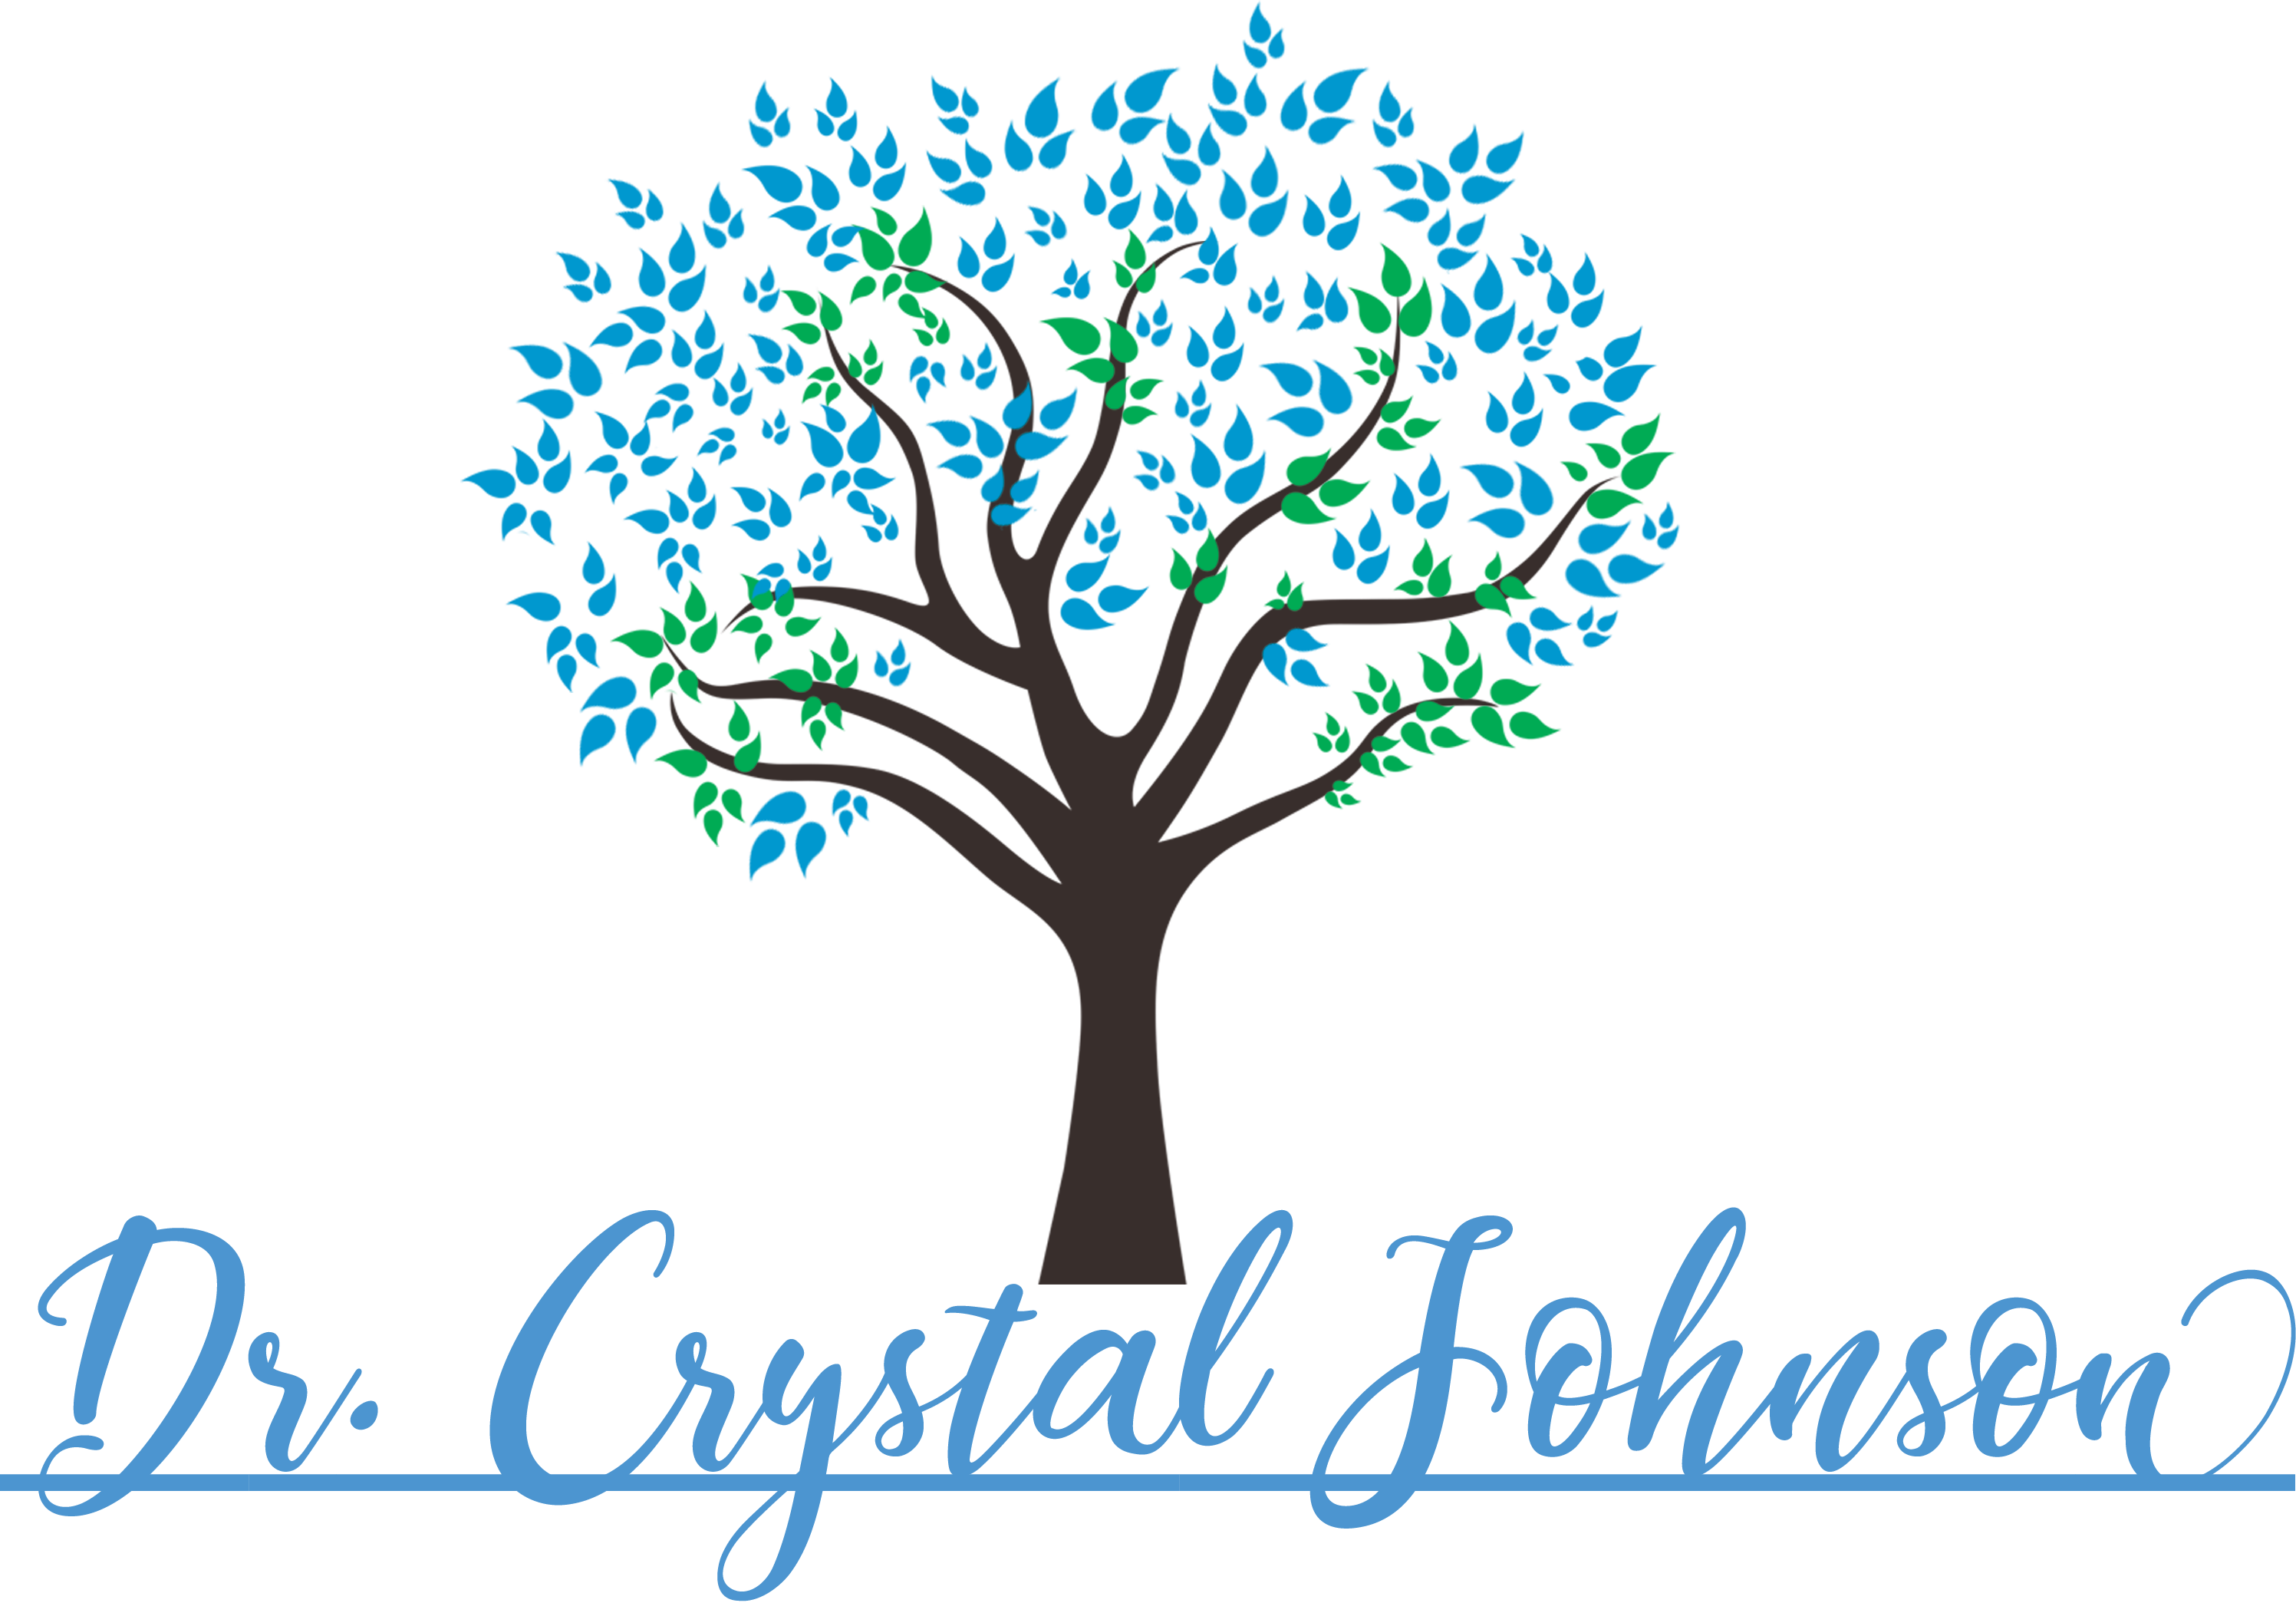 Dr. Crystal Johnson